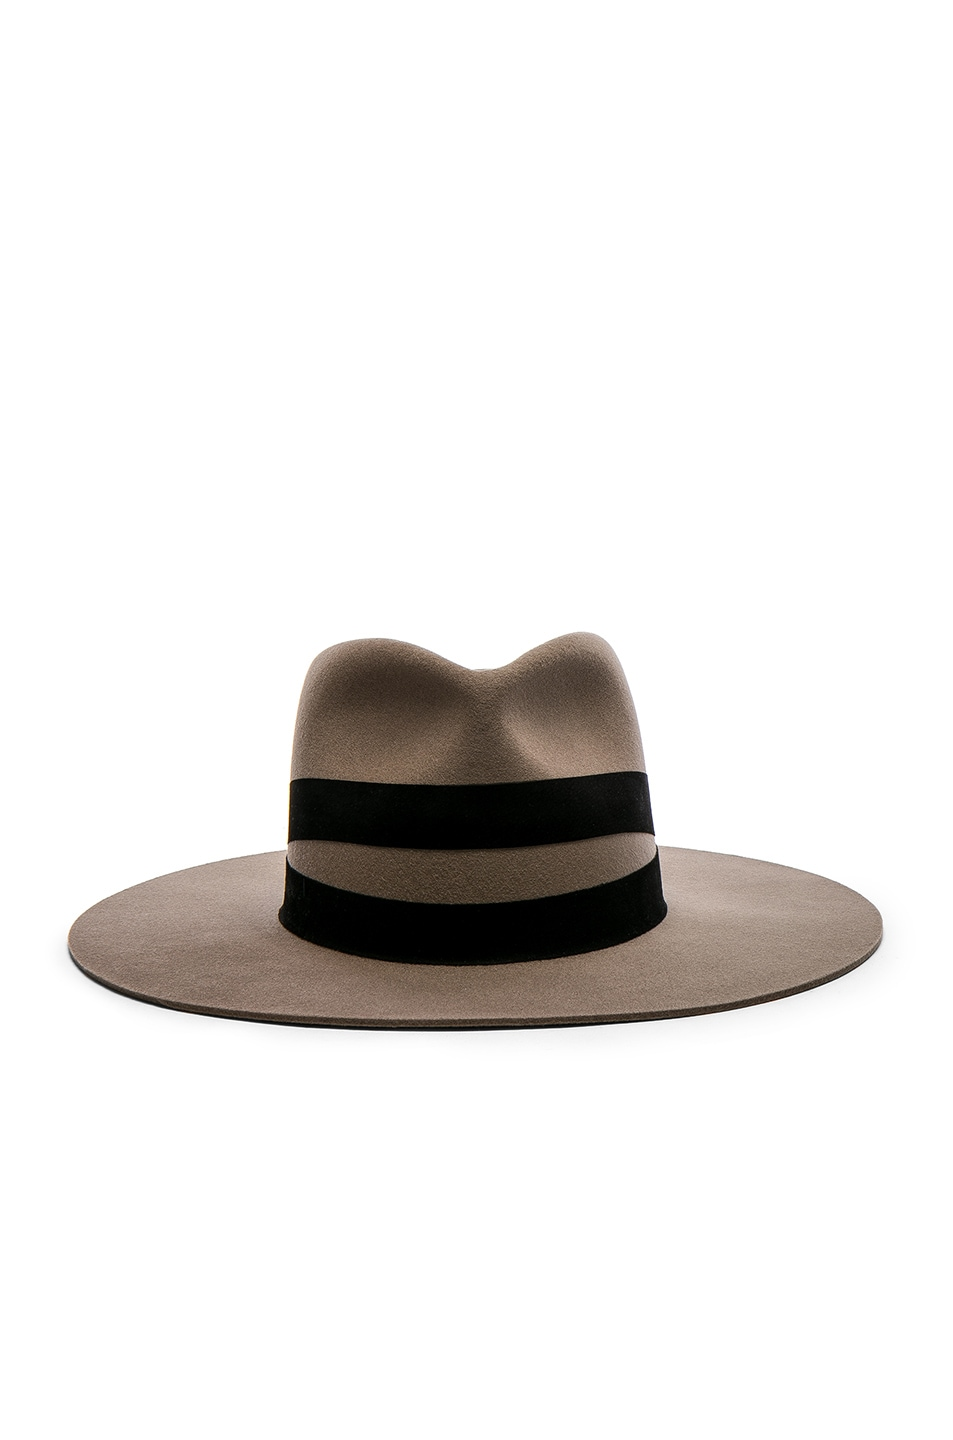 Image 1 of Janessa Leone Un Fedora Hat in Dark Sand